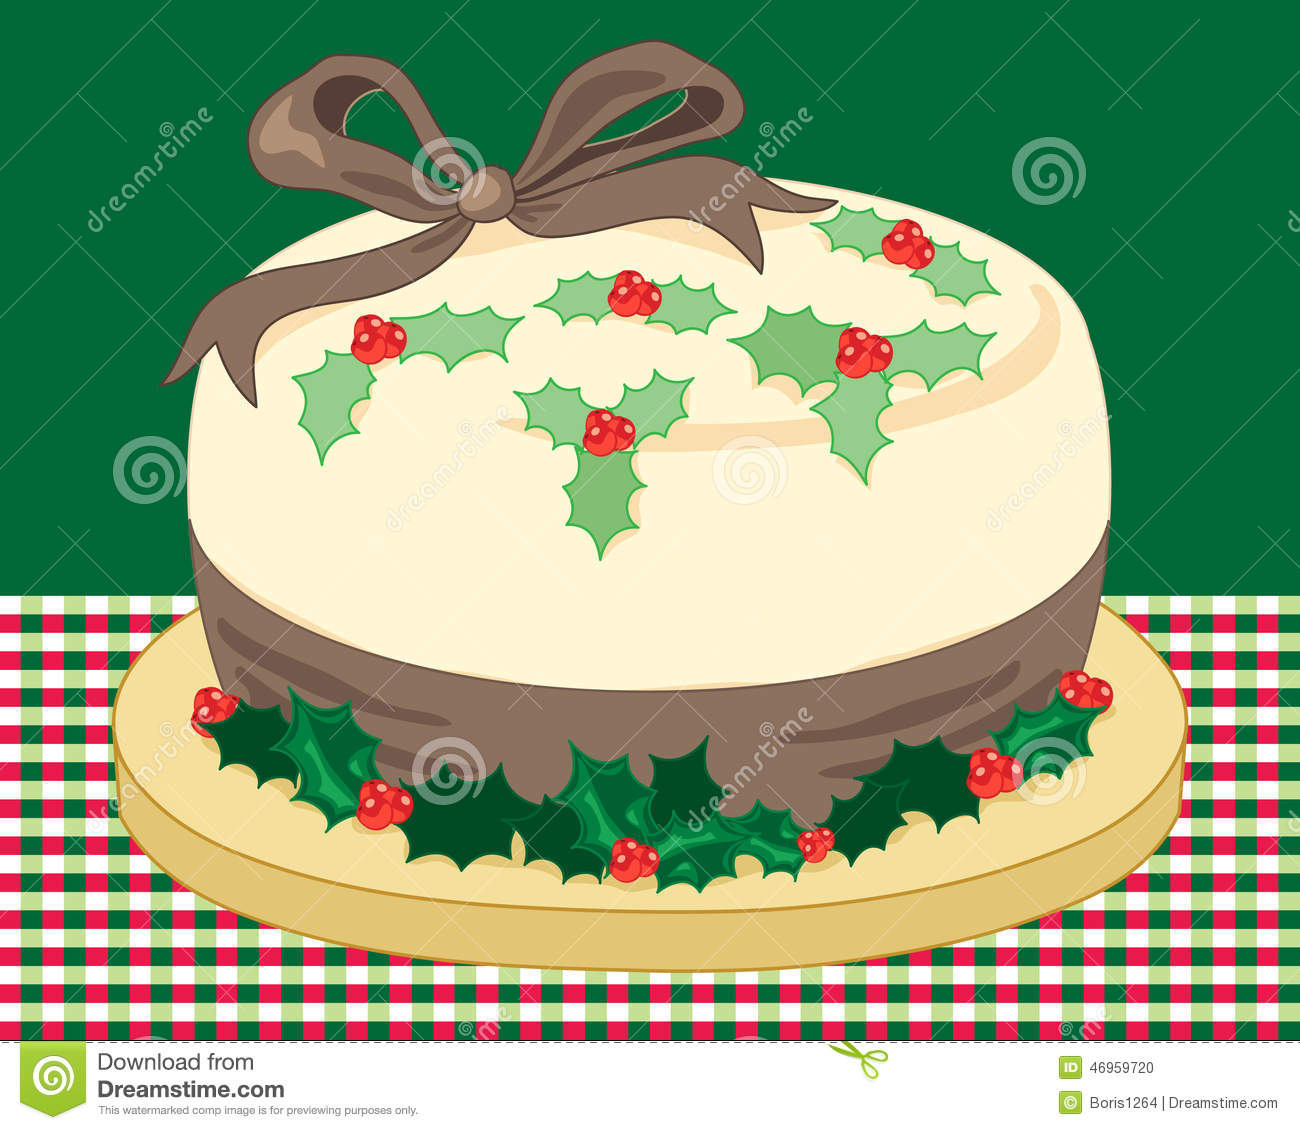 Cake Decoration Holly : Christmas Holly Cake Stock Vector - Image: 46959720